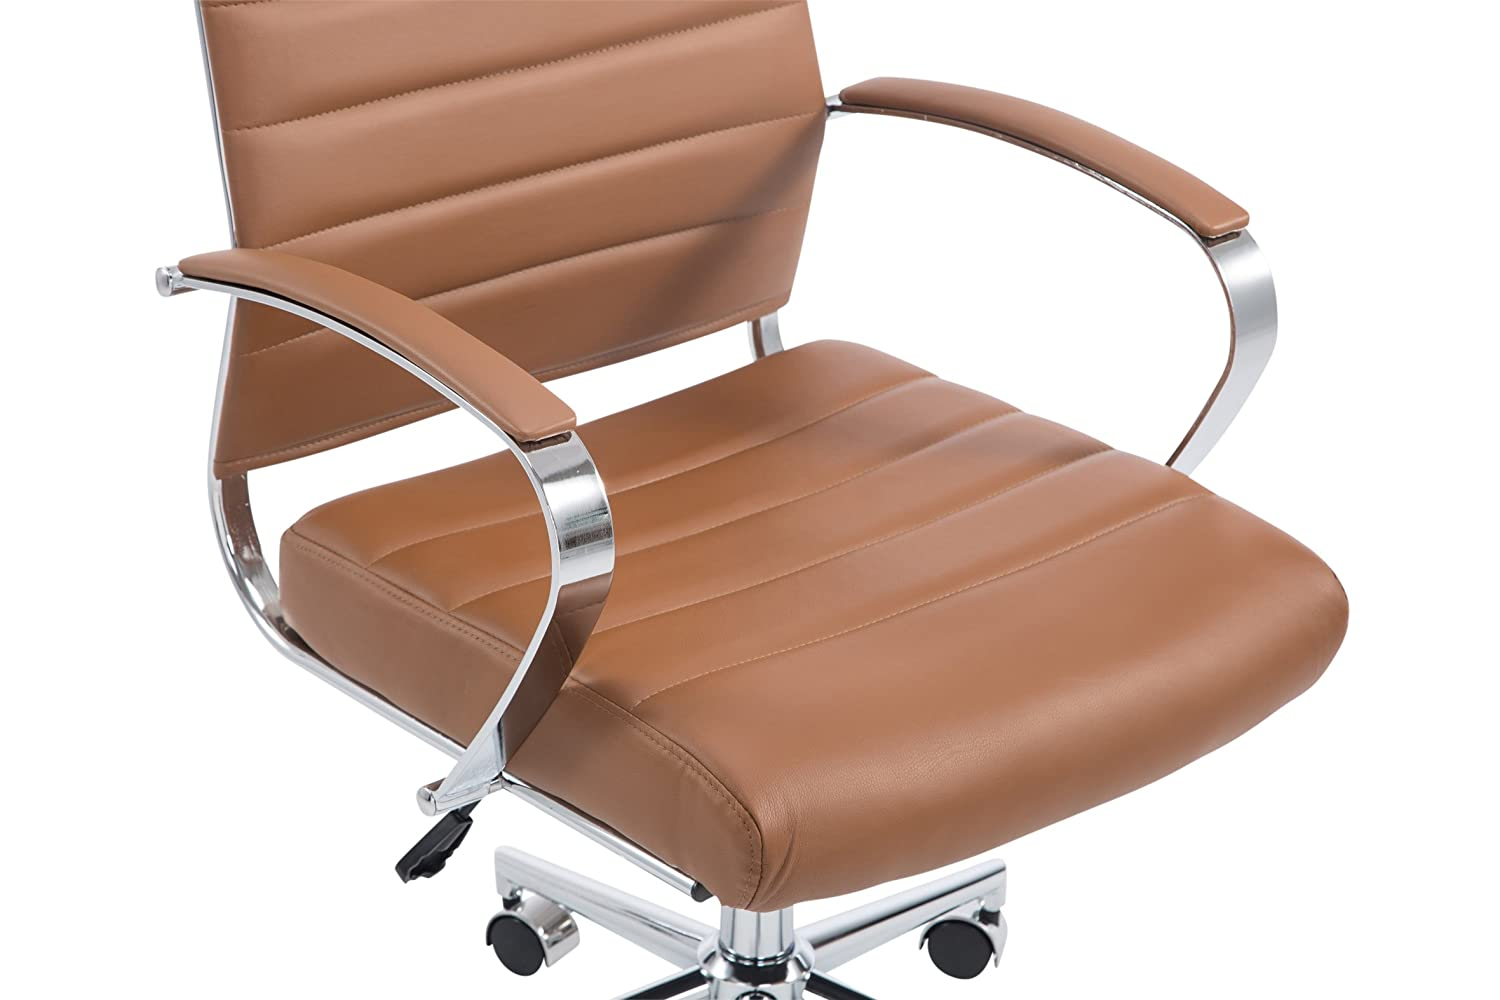 Terracotta Poly and Bark POLY /& BARK EM-252-TER Tremaine Office Chair